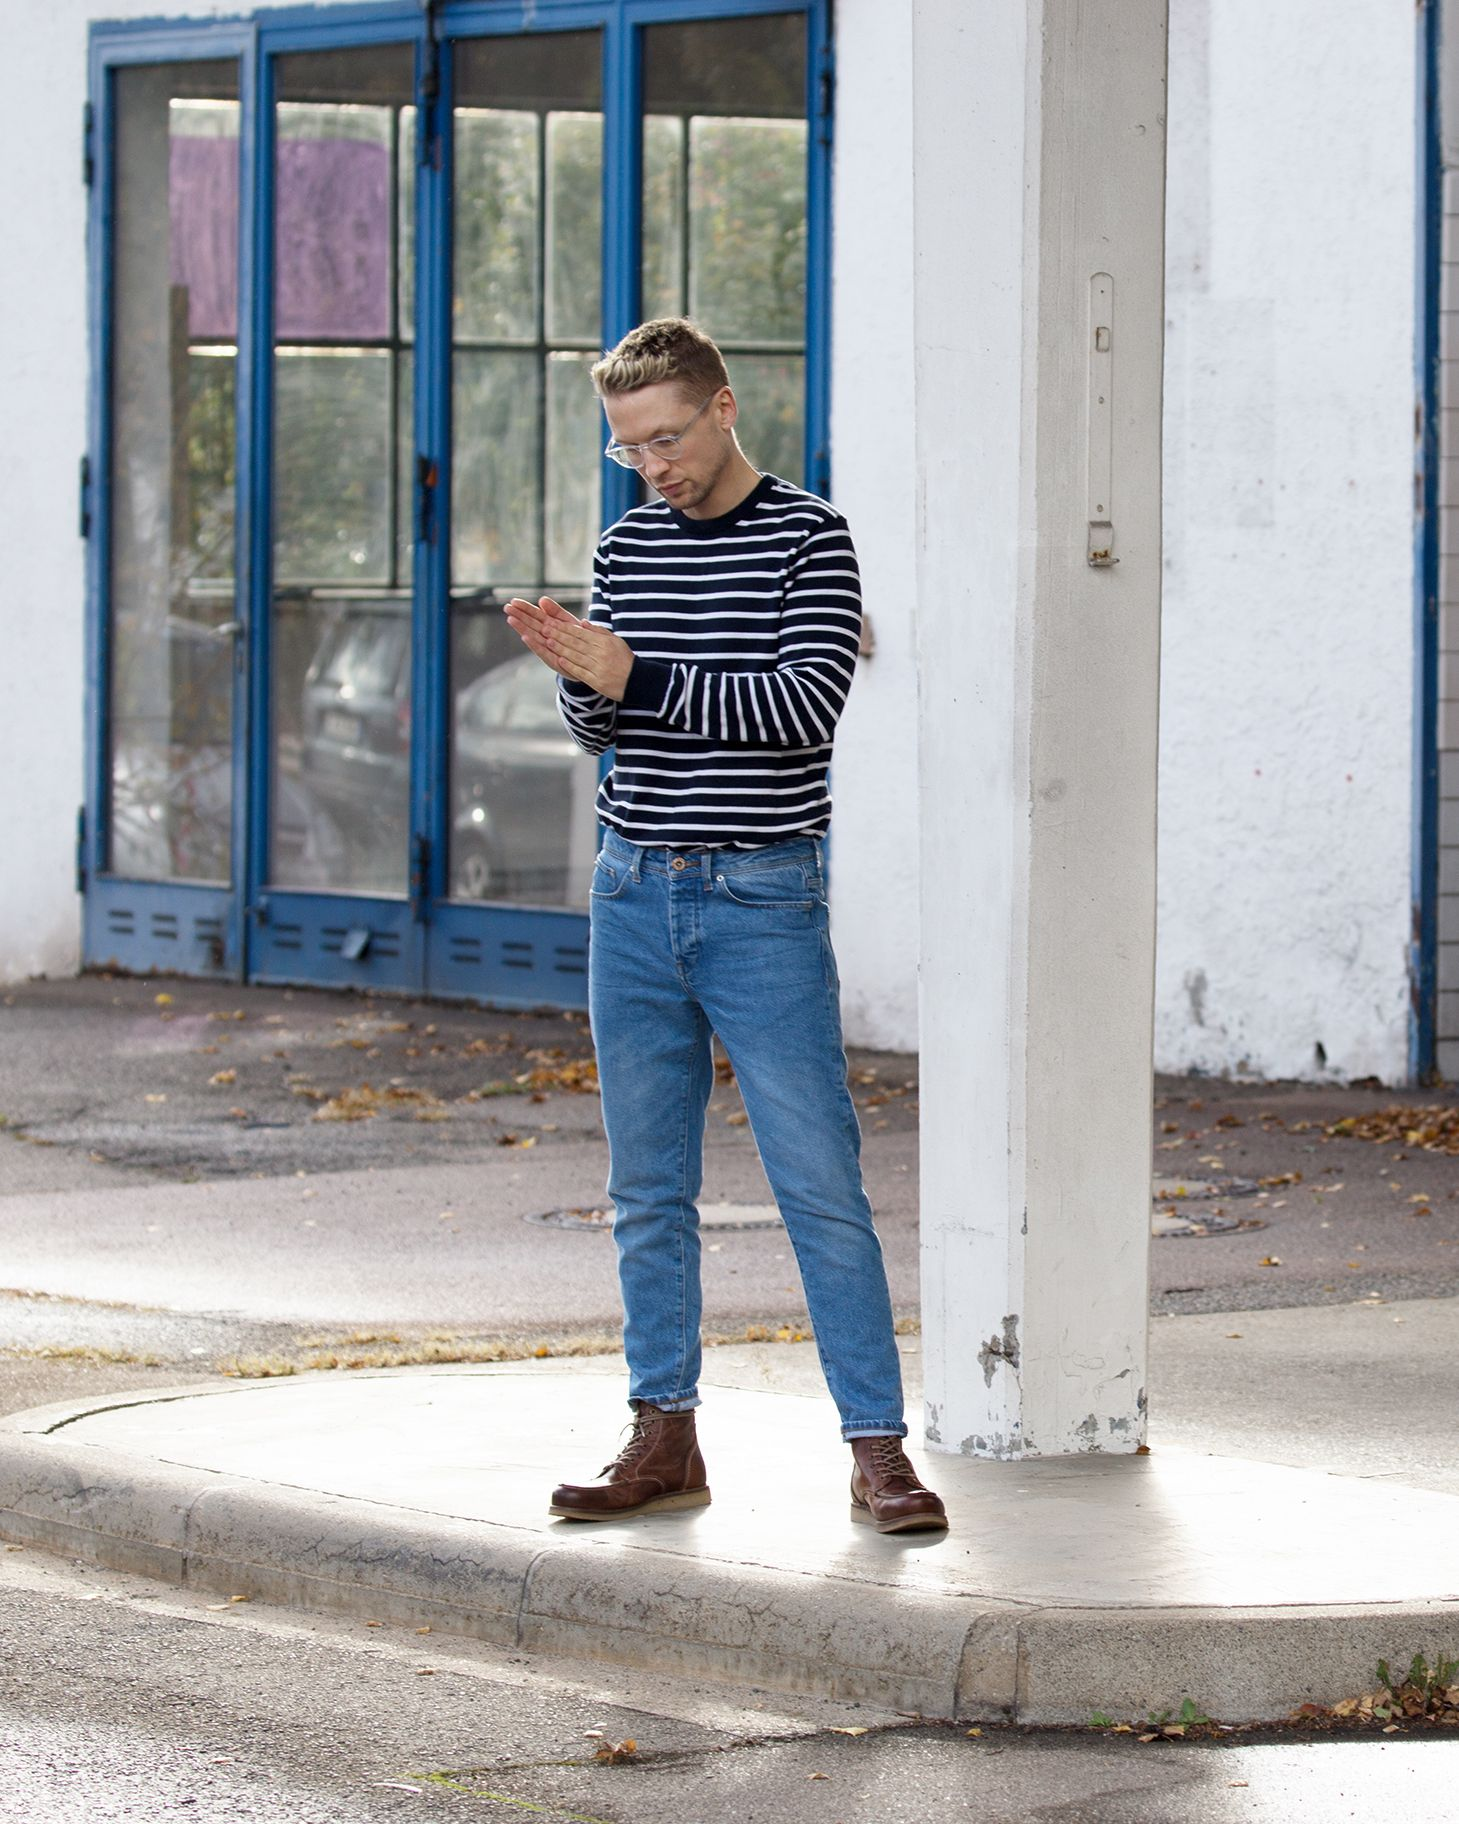 Mens Fashion High Waisted Vintage Style Blue Denim Jeans And Striped Navy And White French Look Pullover A White Jeans Men Jeans Outfit Men White Jeans Outfit